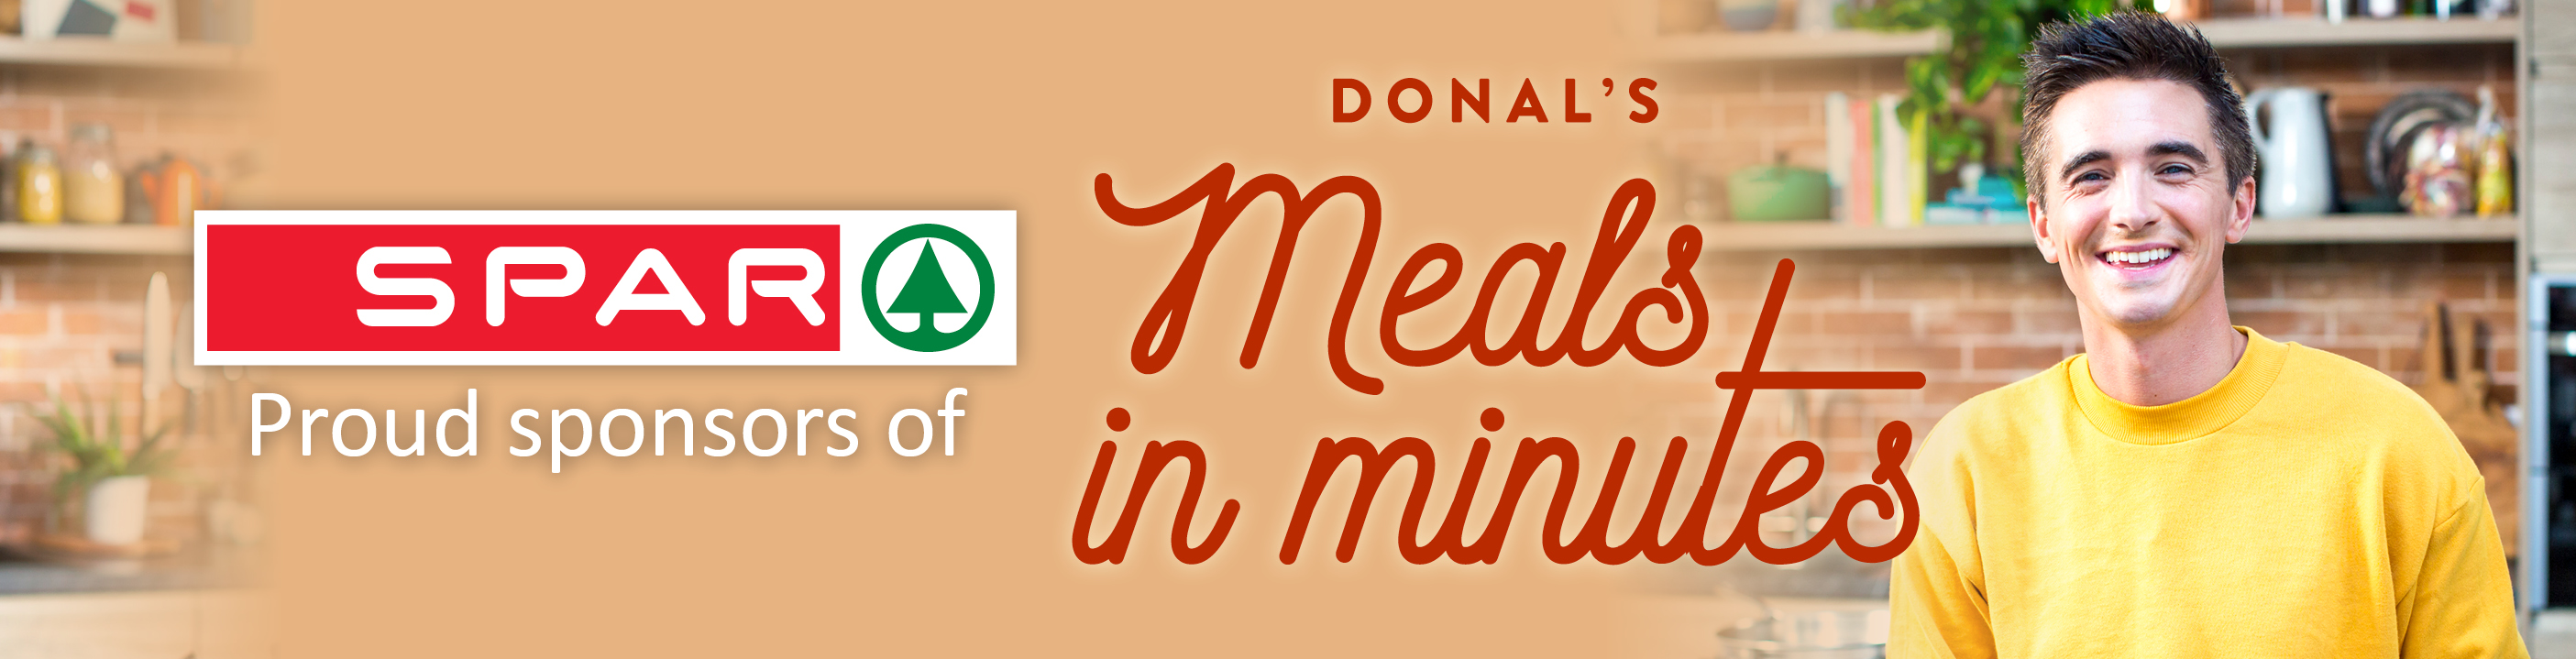 W508563 - Donals Meals in Minutes Web Banners 1349x345px.jpg